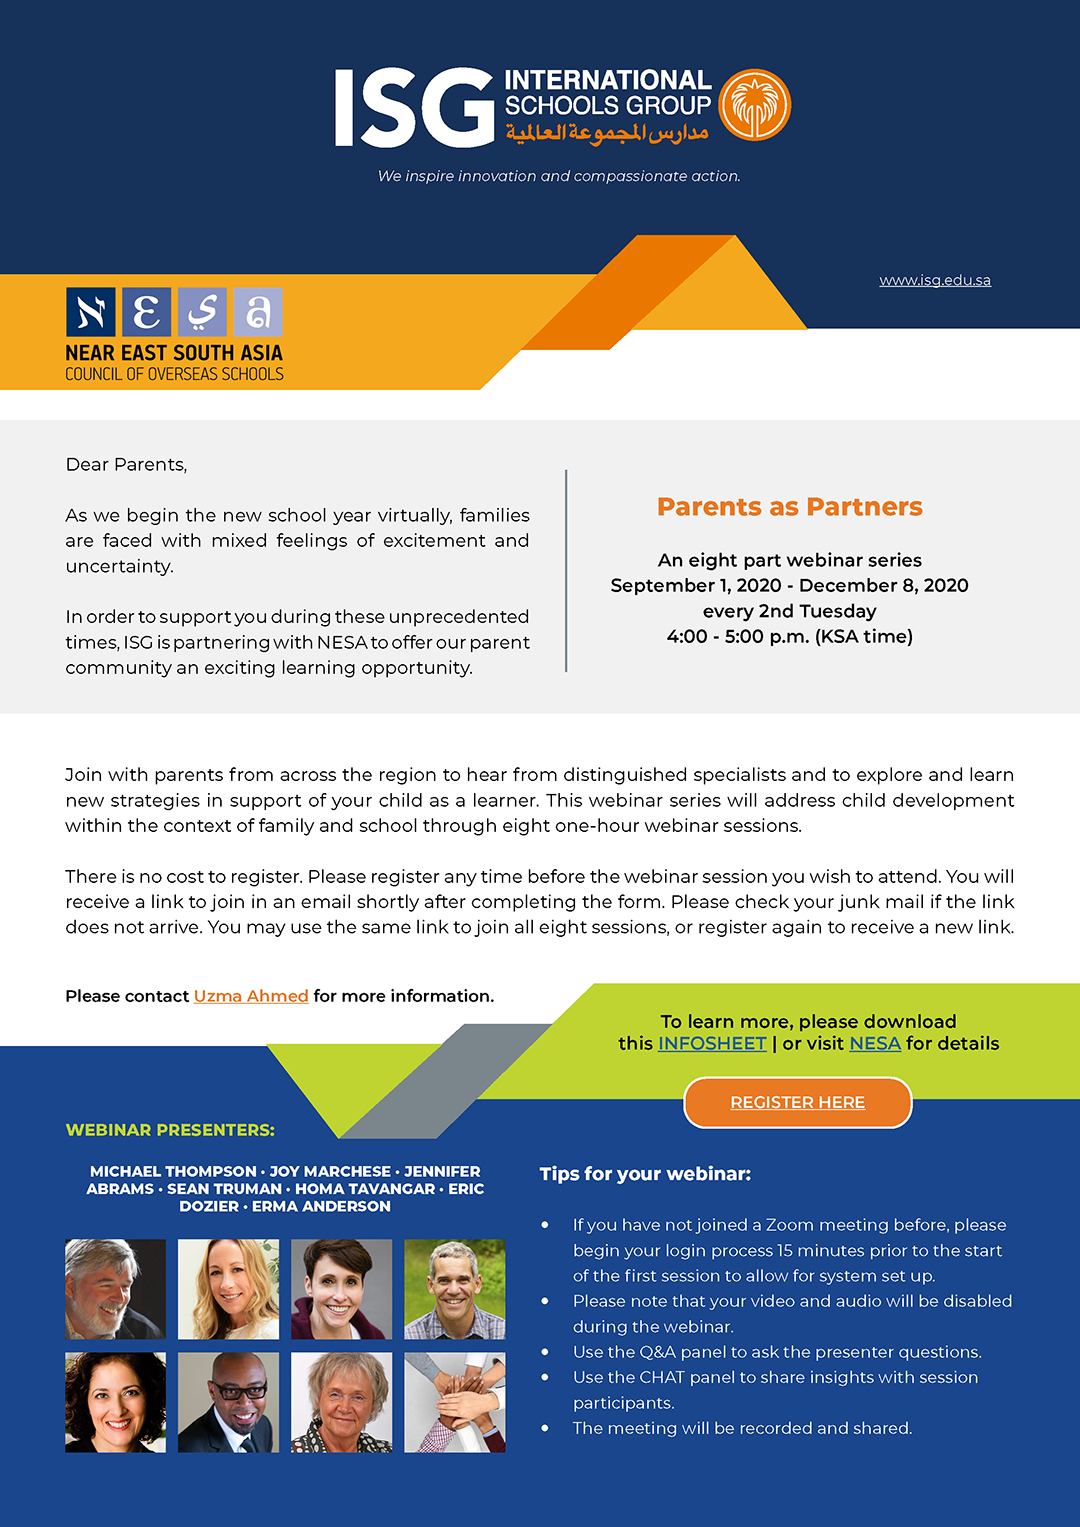 NESA Webinars for Parents: Sign Up for Free